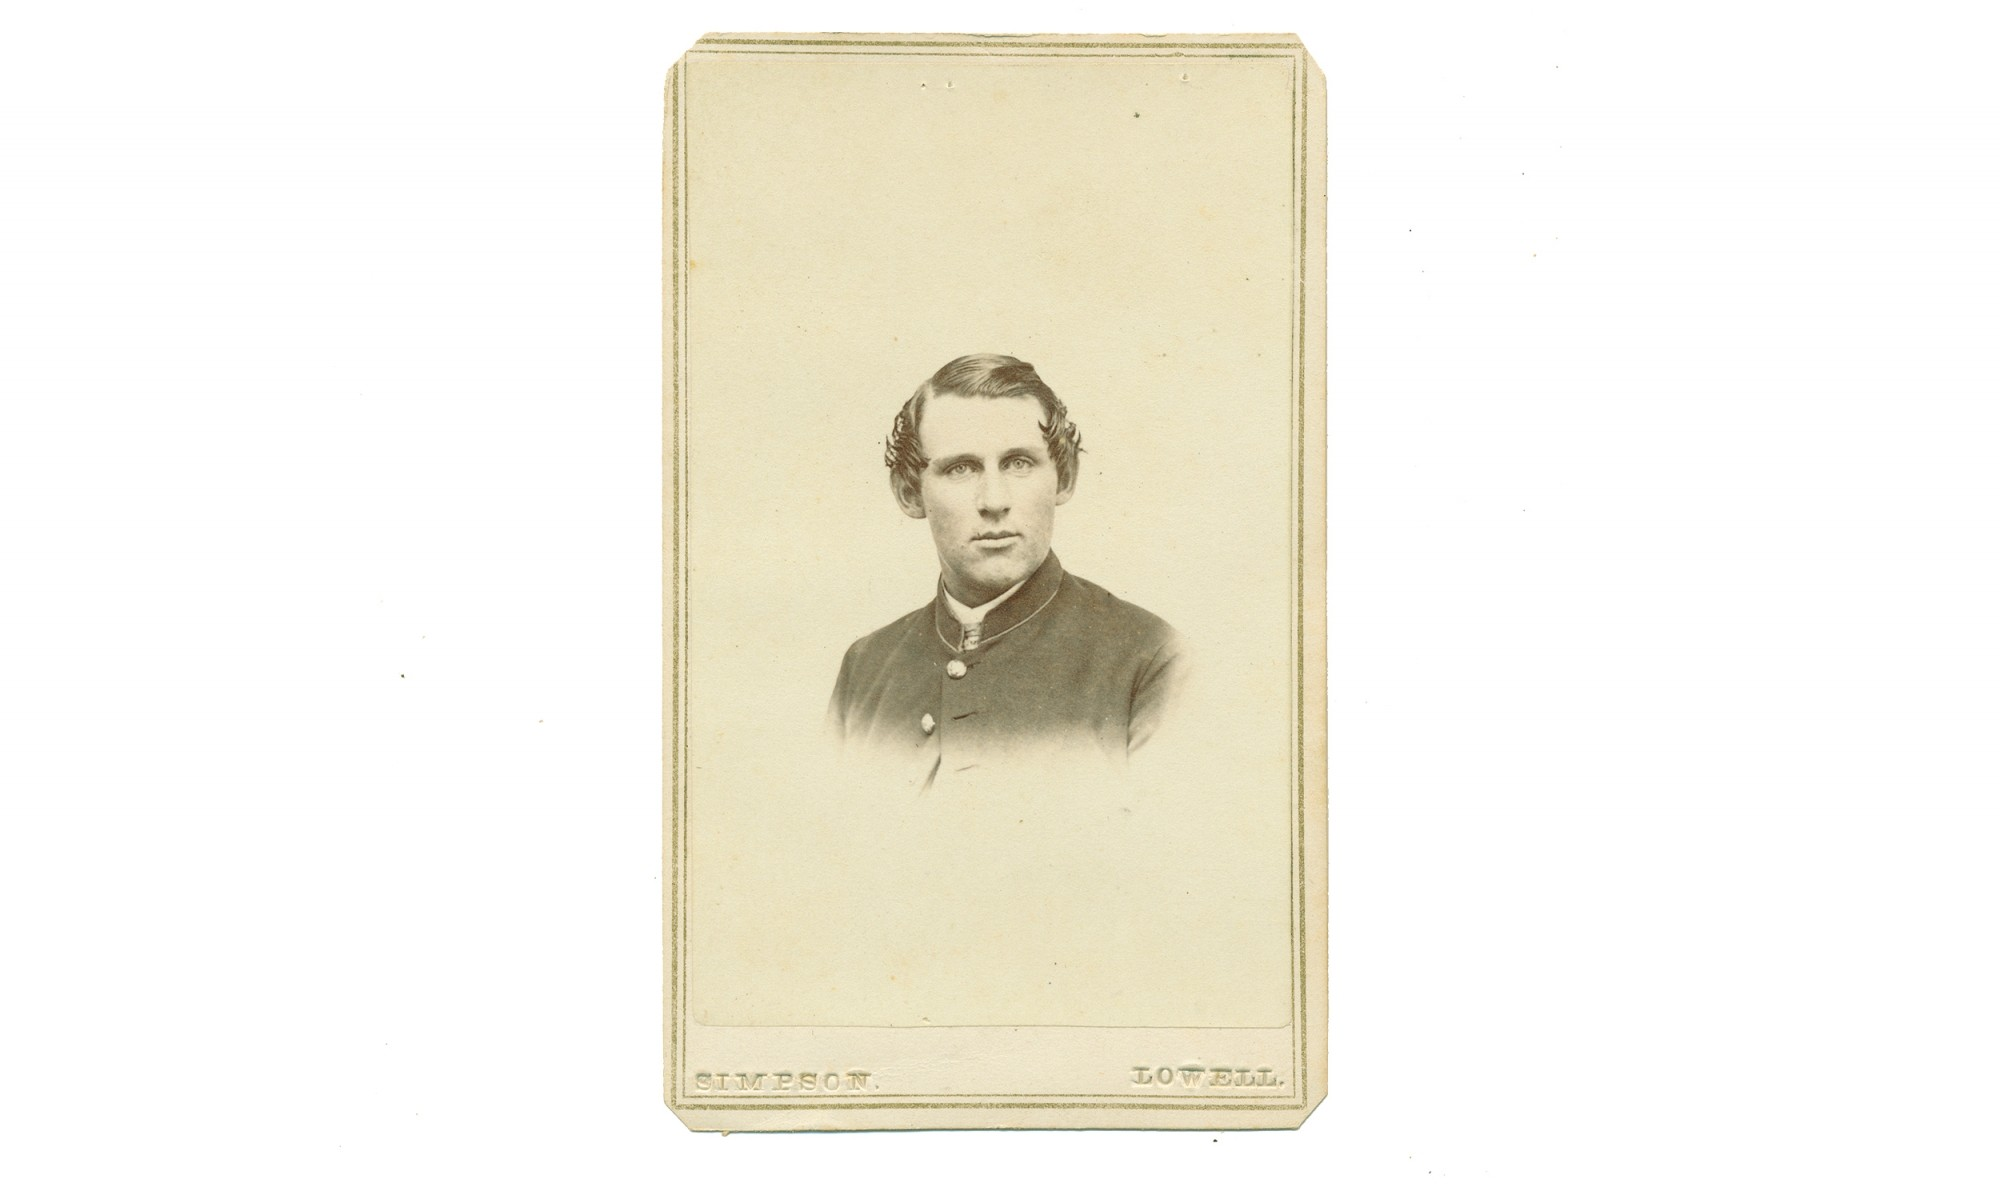 BUST VIEW CDV OF 4TH VERMONT COMMISSIONED ENLISTED MAN